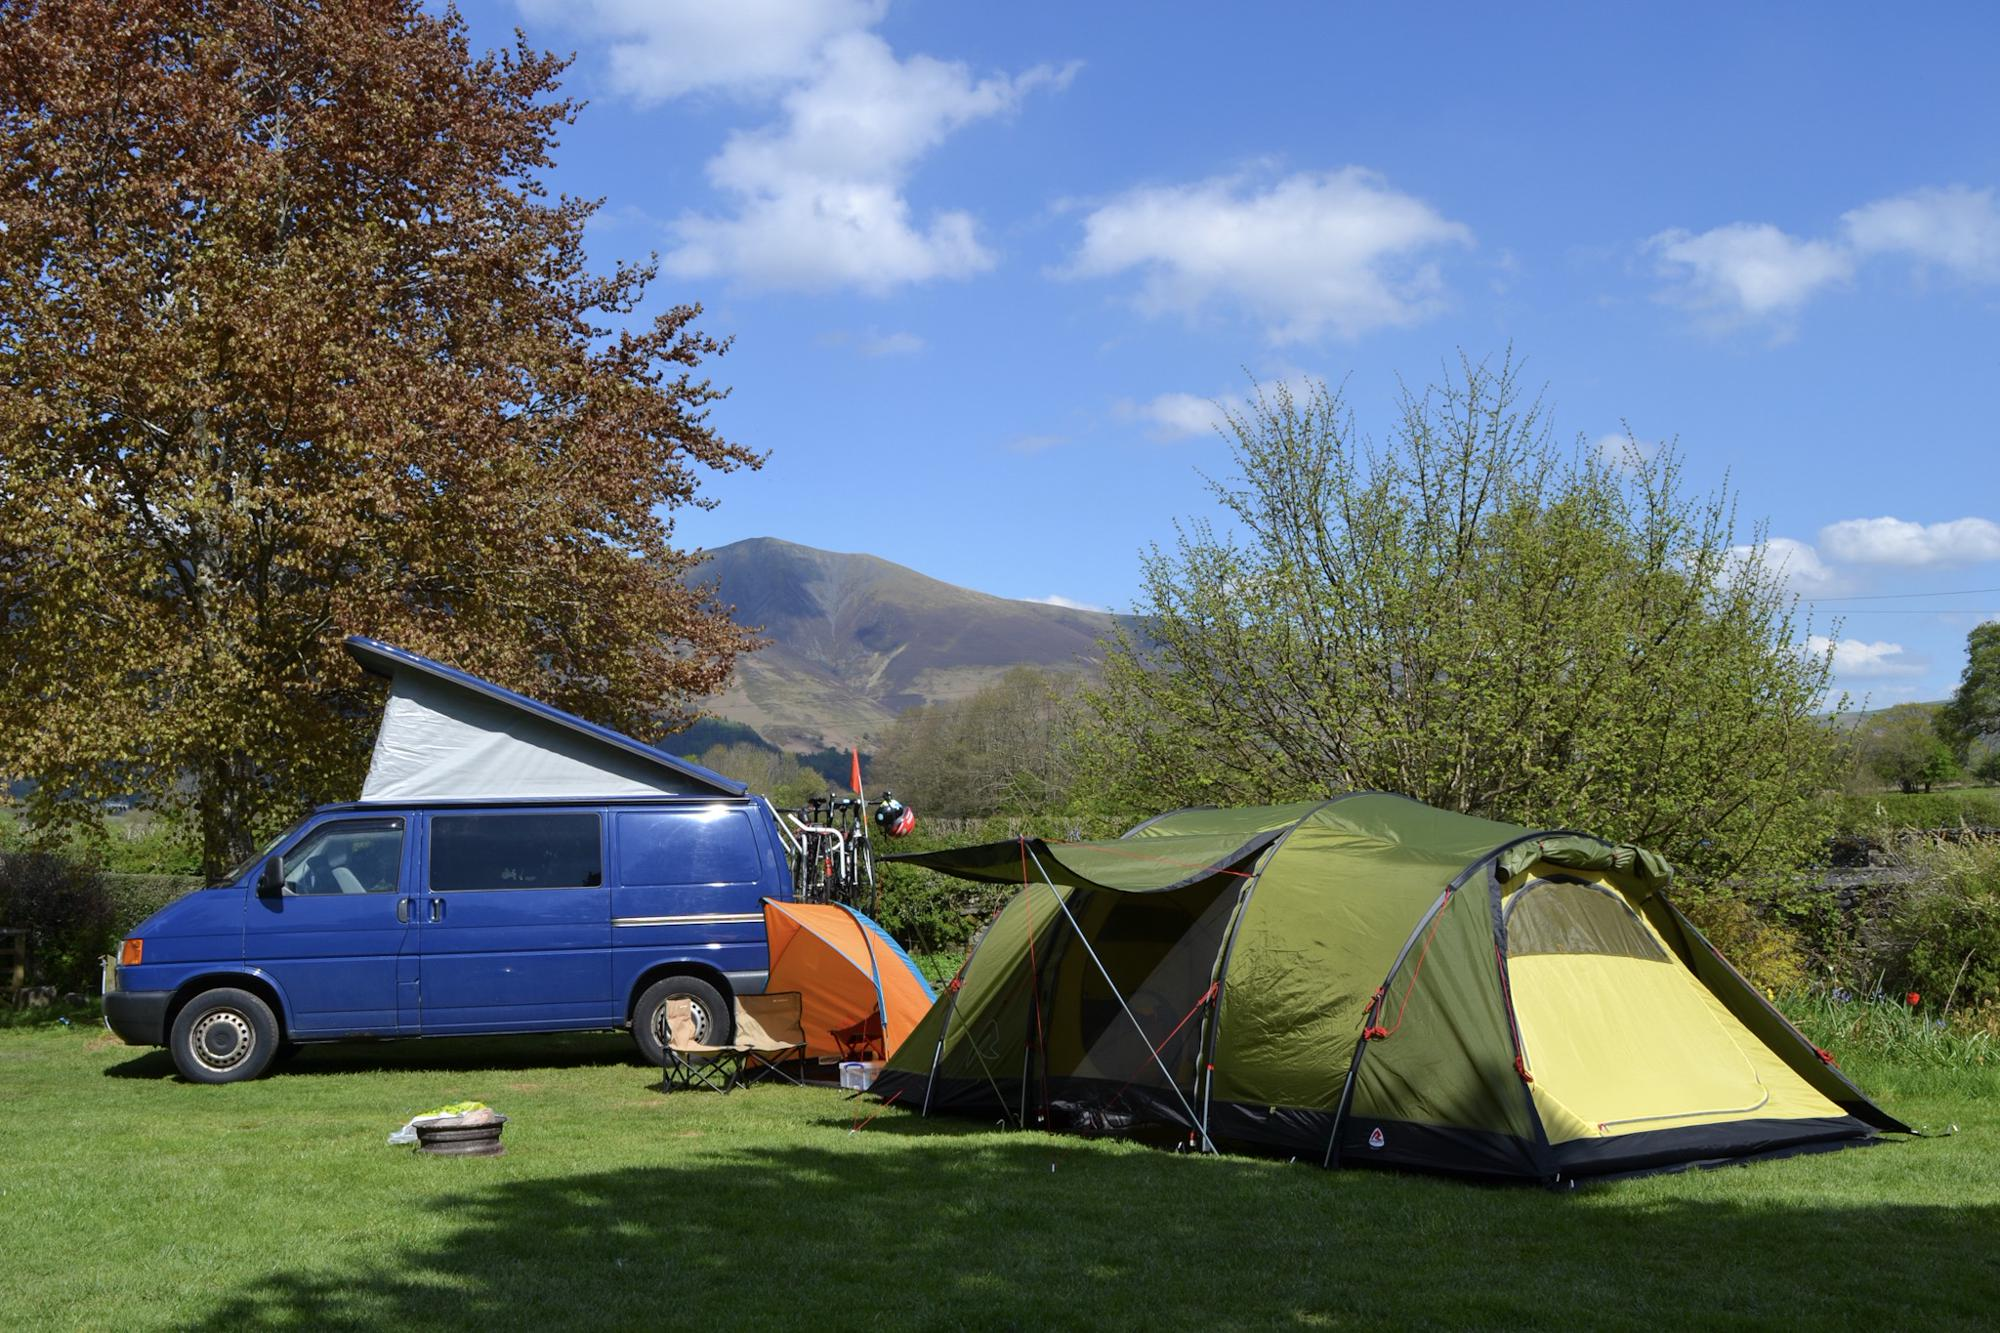 Lanefoot Farm Campsite - blue VW campervan, orange pup tent and green tent with view of Skiddaw